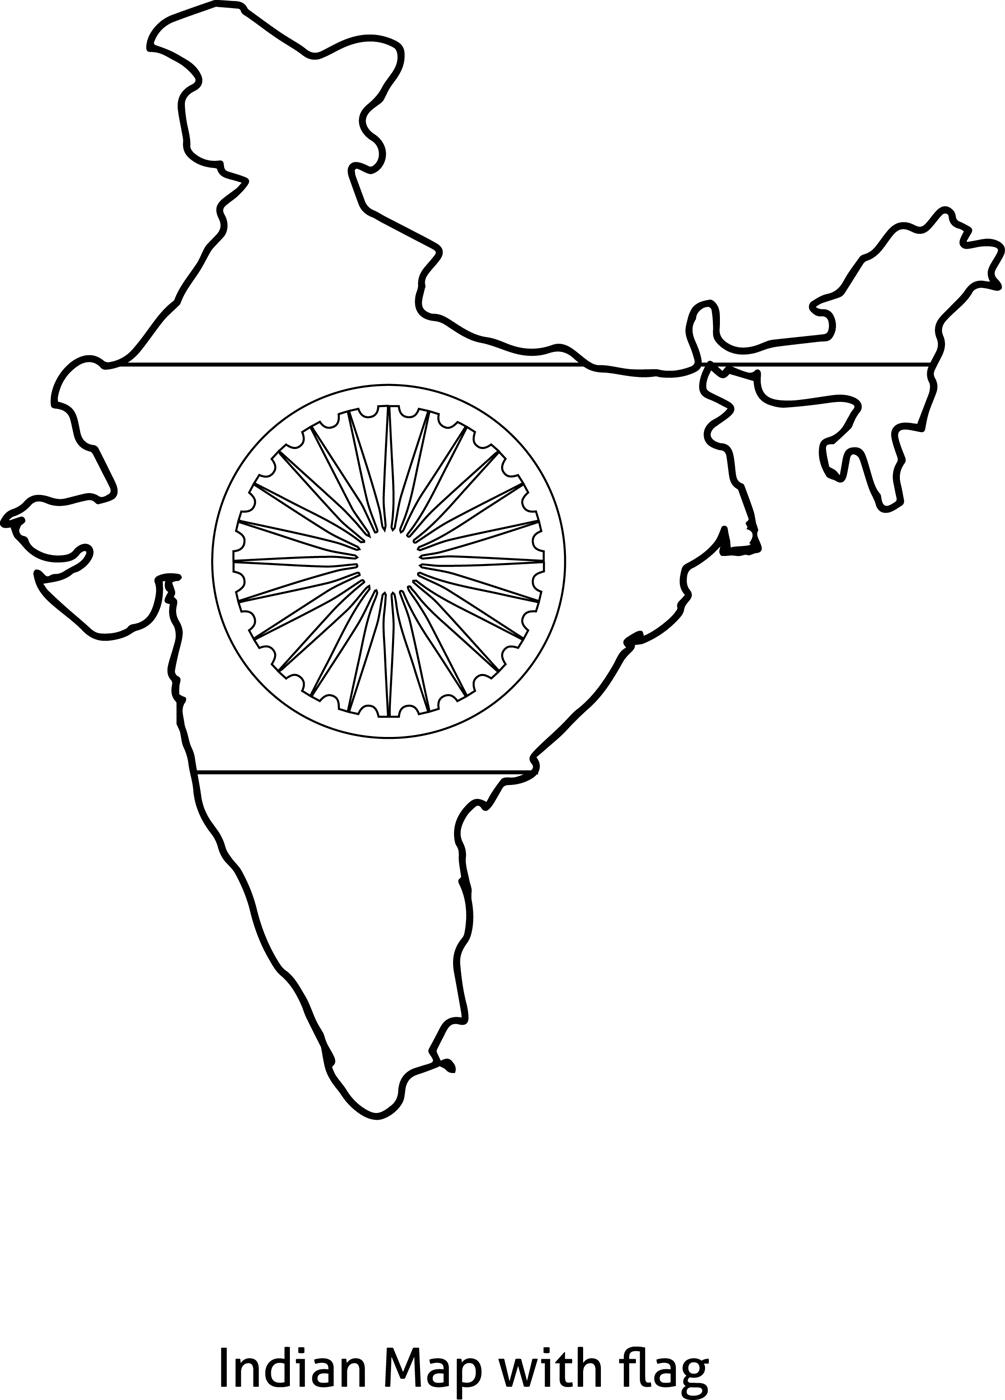 Flag Of India Drawing at GetDrawings.com | Free for personal use ...